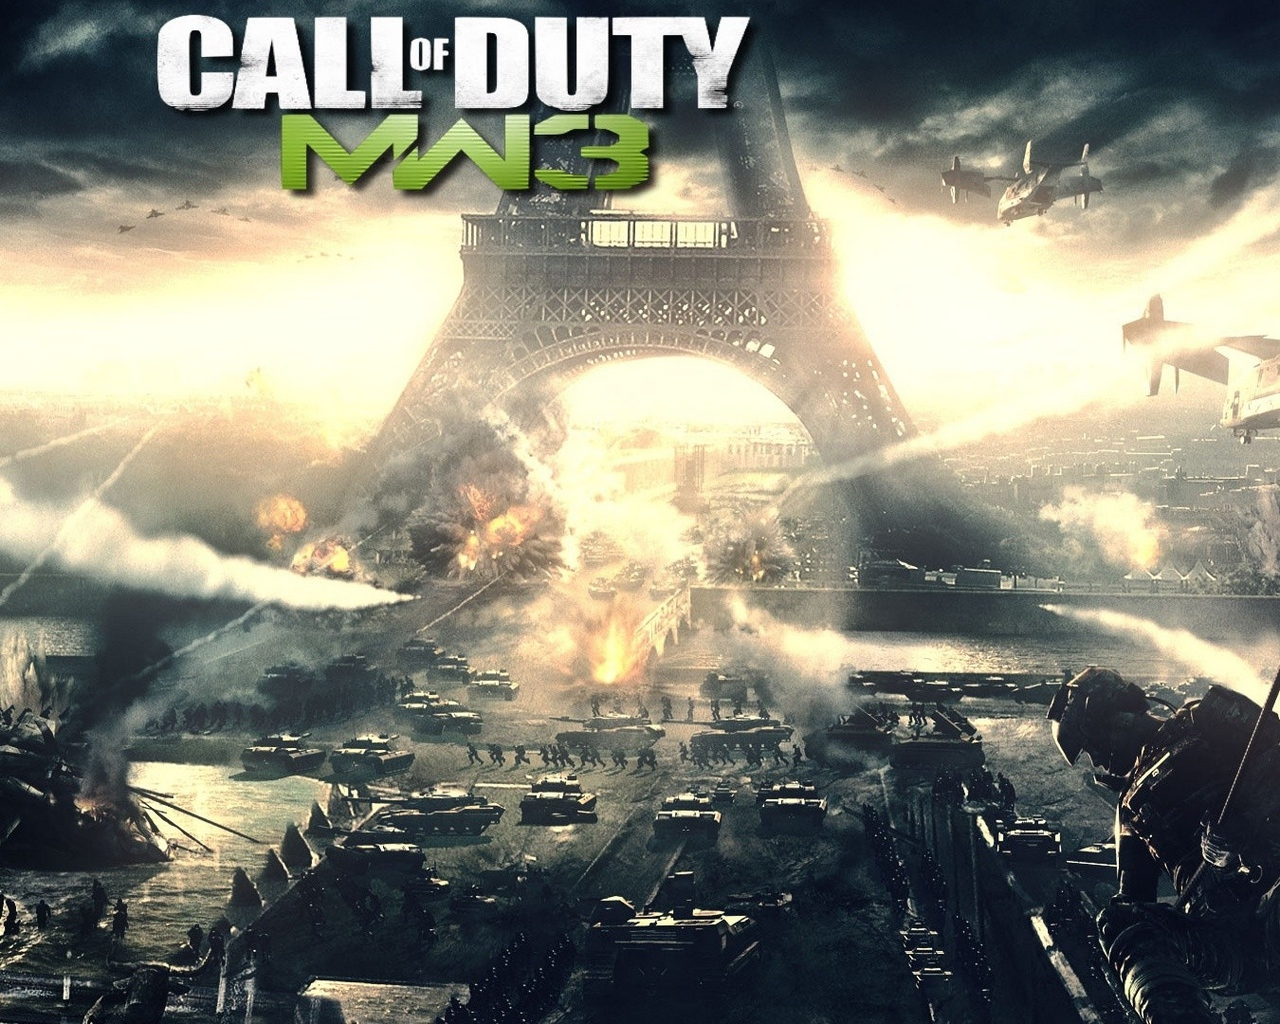 Call Of Duty Modern Warfare 3 Wallpaper Posted By John Tremblay